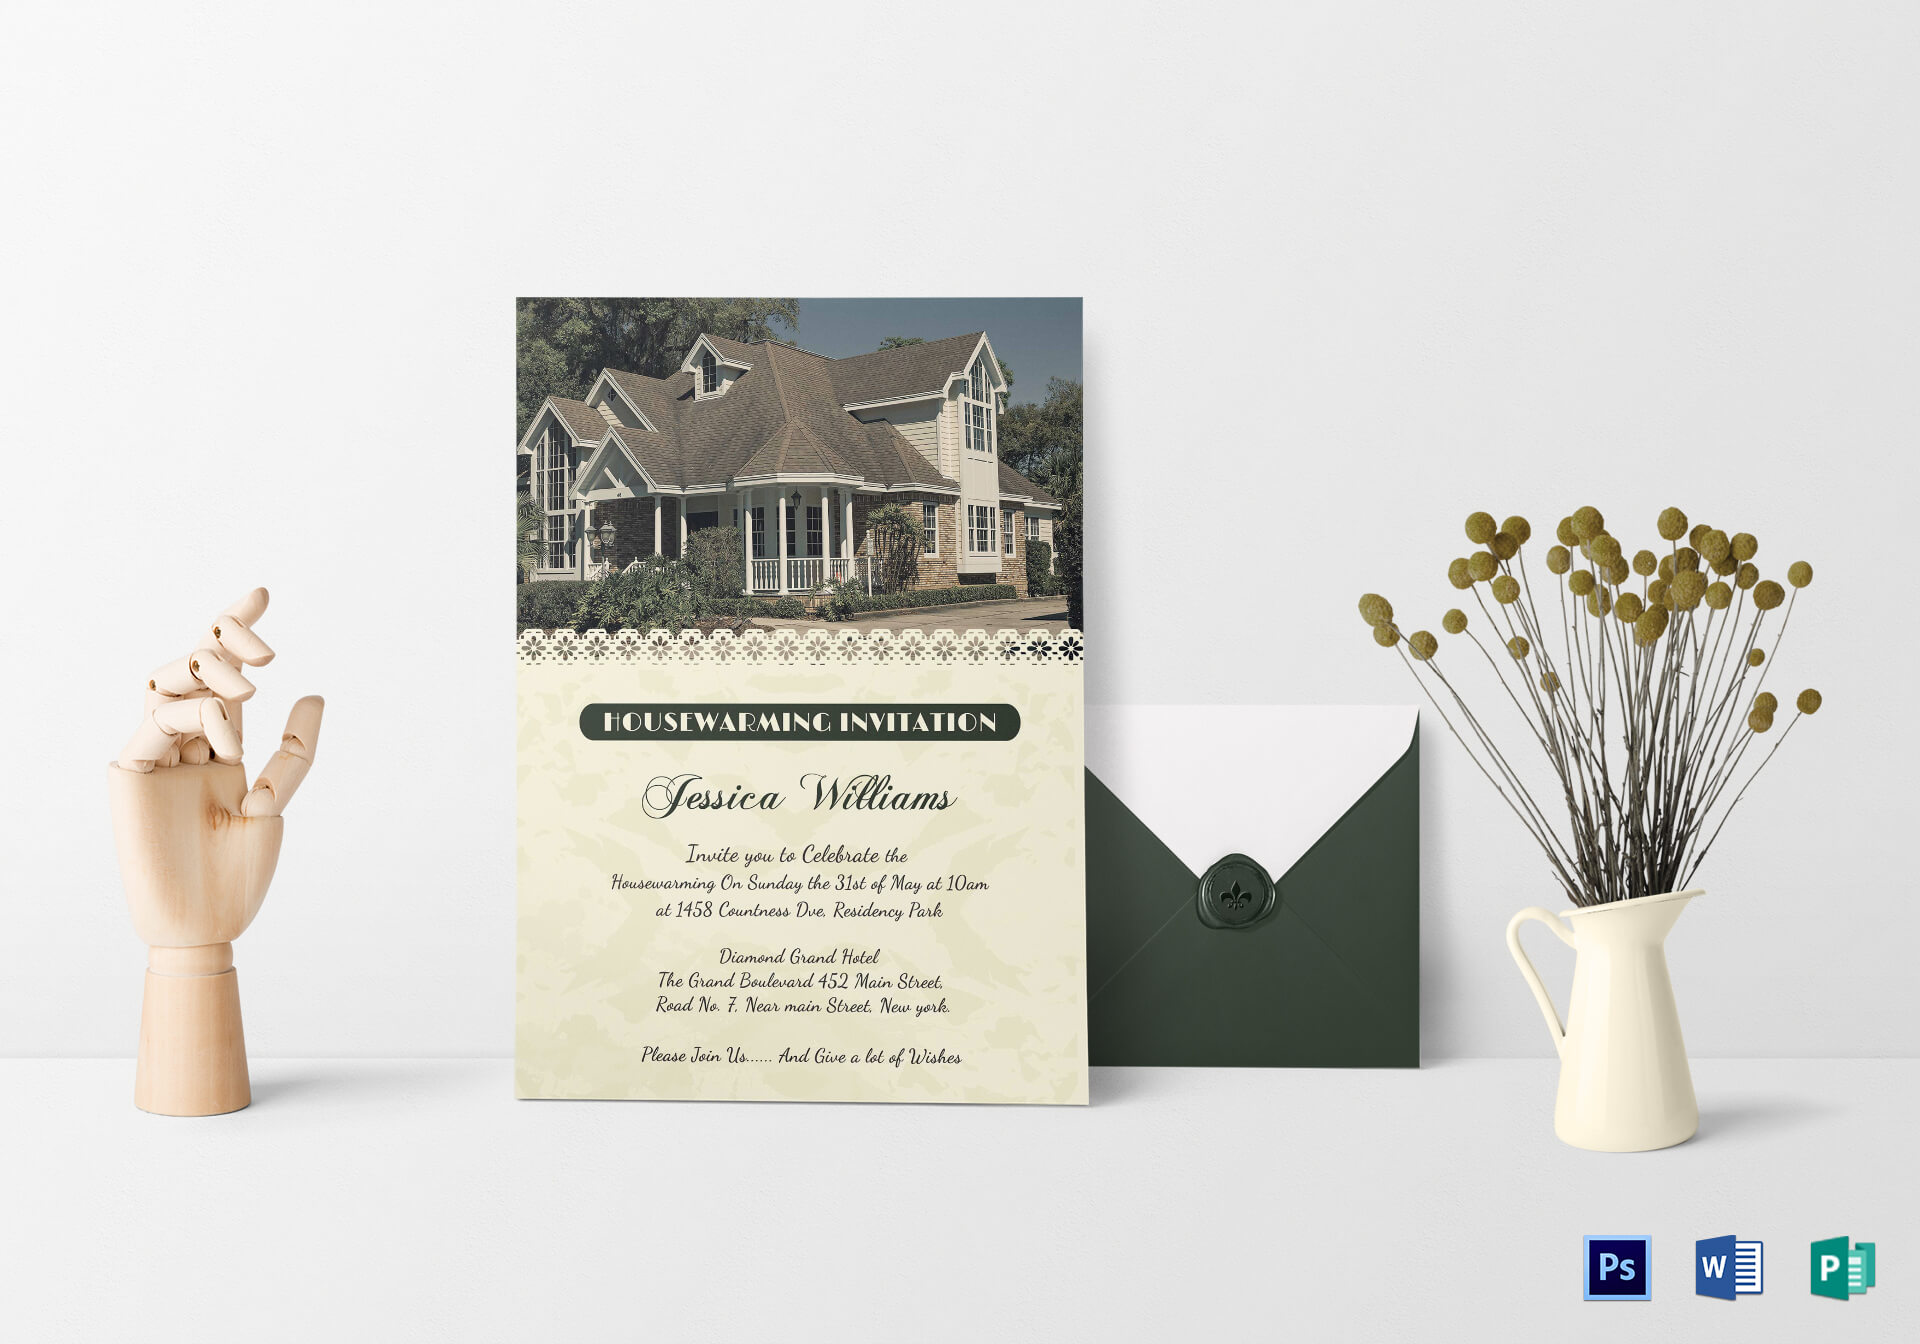 Images Of Housewarming Invitation - Calep.midnightpig.co Regarding Free Housewarming Invitation Card Template